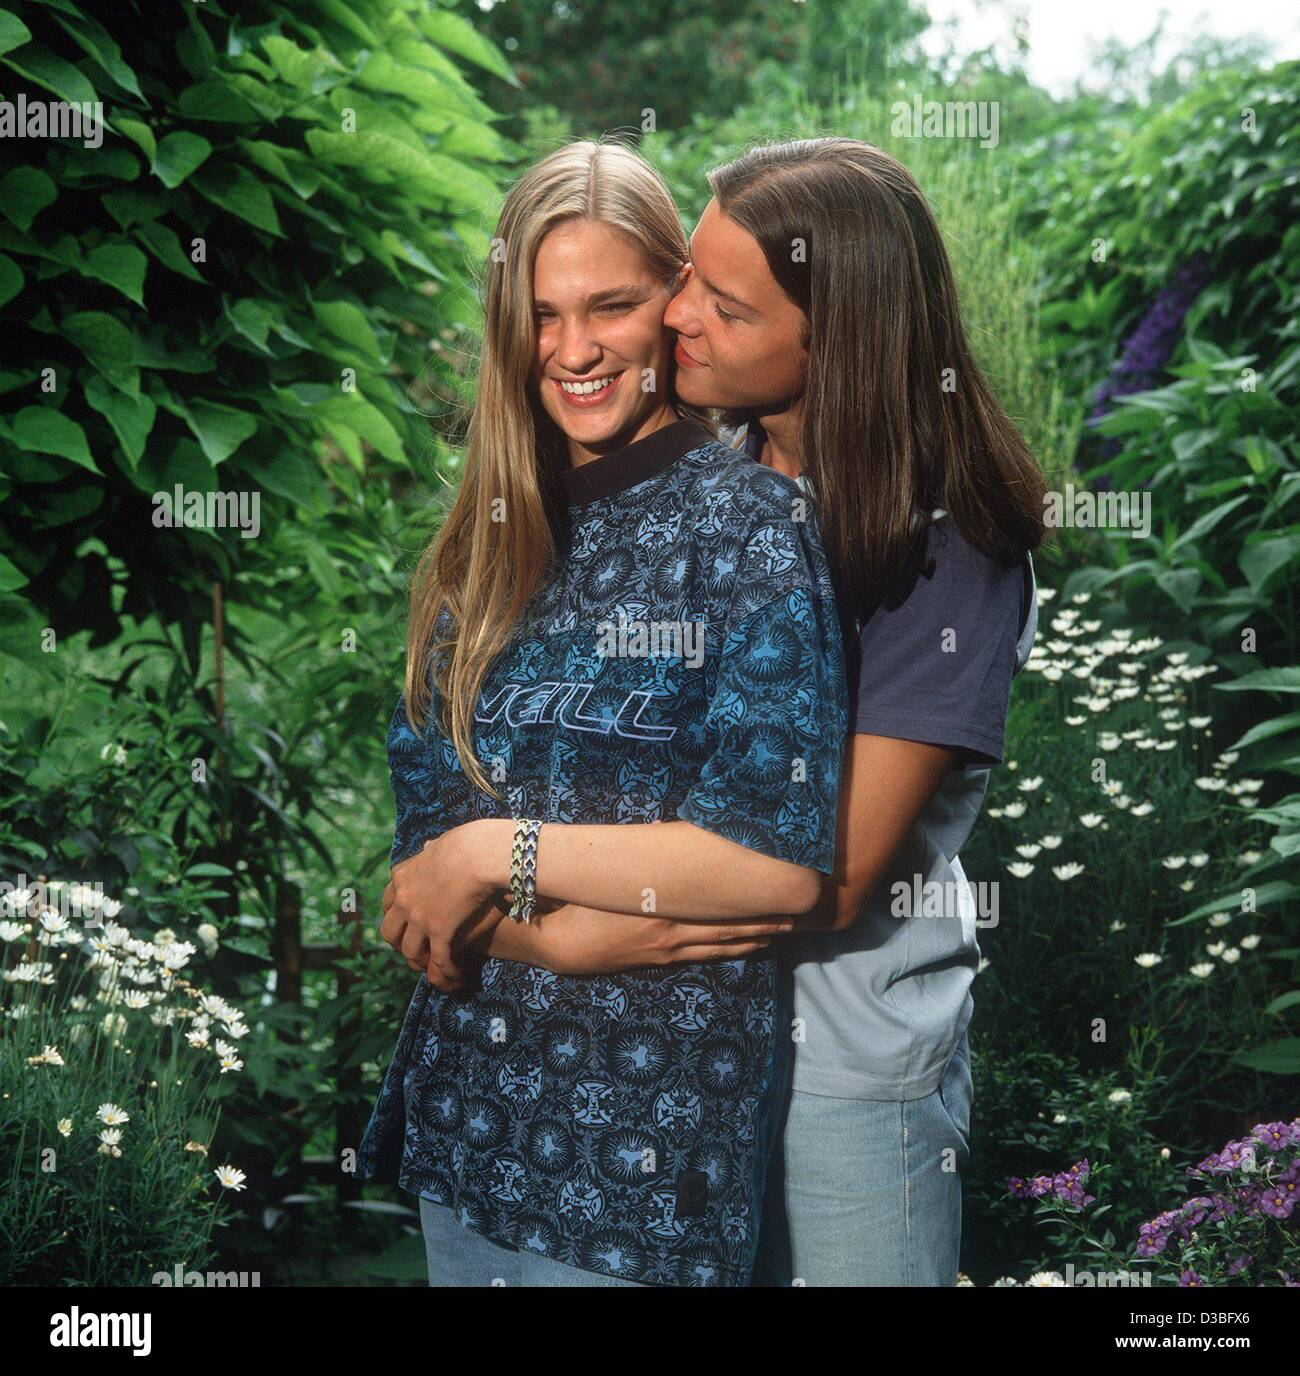 (dpa) - A young couple is smooching in a garden (undated, recent). - Stock Image